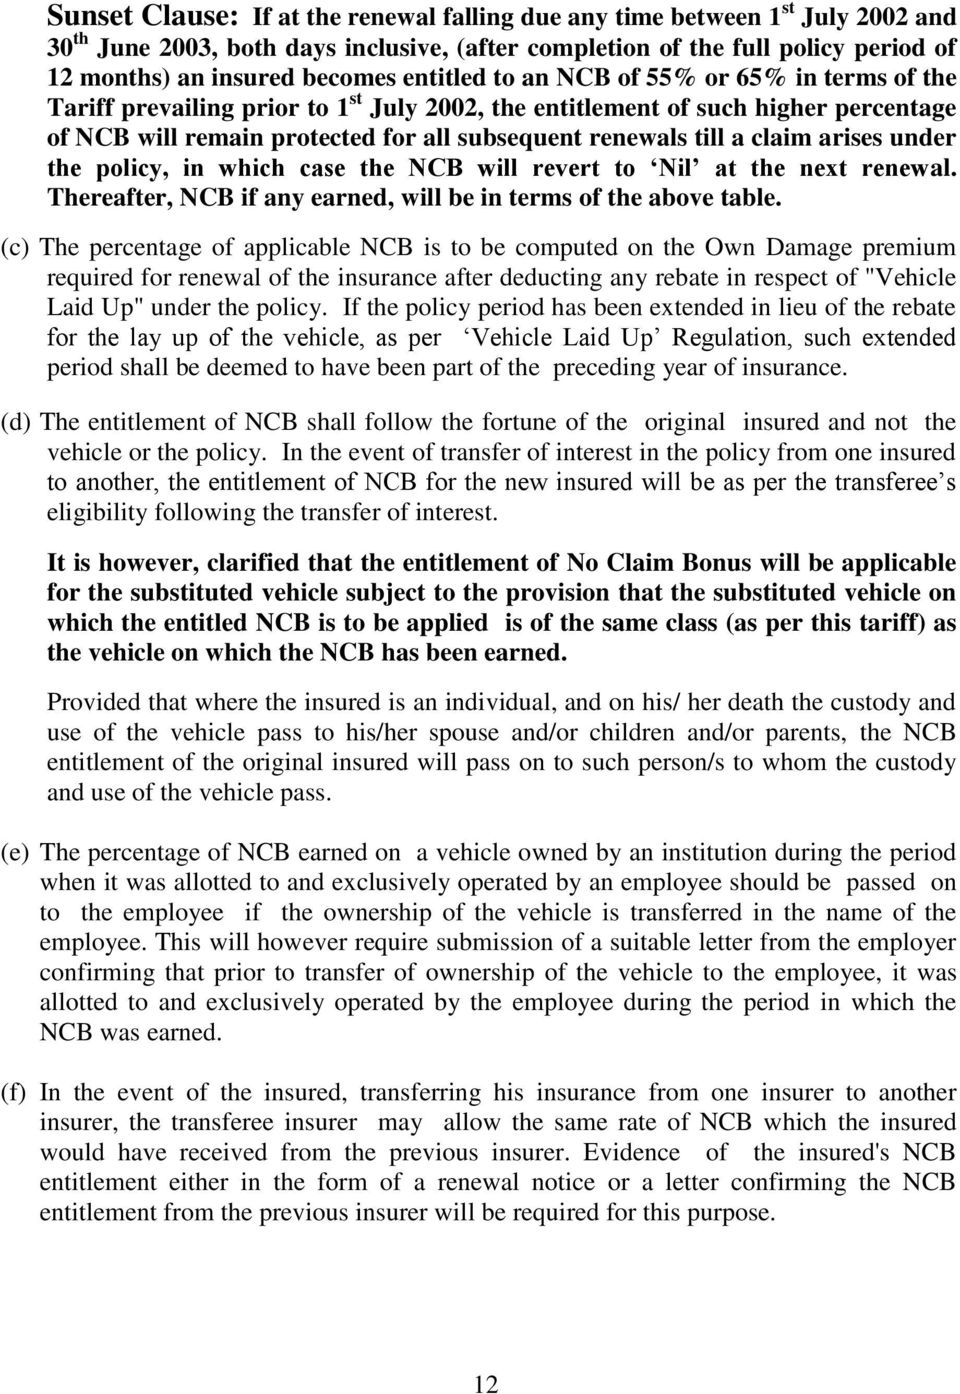 claim arises under the policy, in which case the NCB will revert to Nil at the next renewal. Thereafter, NCB if any earned, will be in terms of the above table.